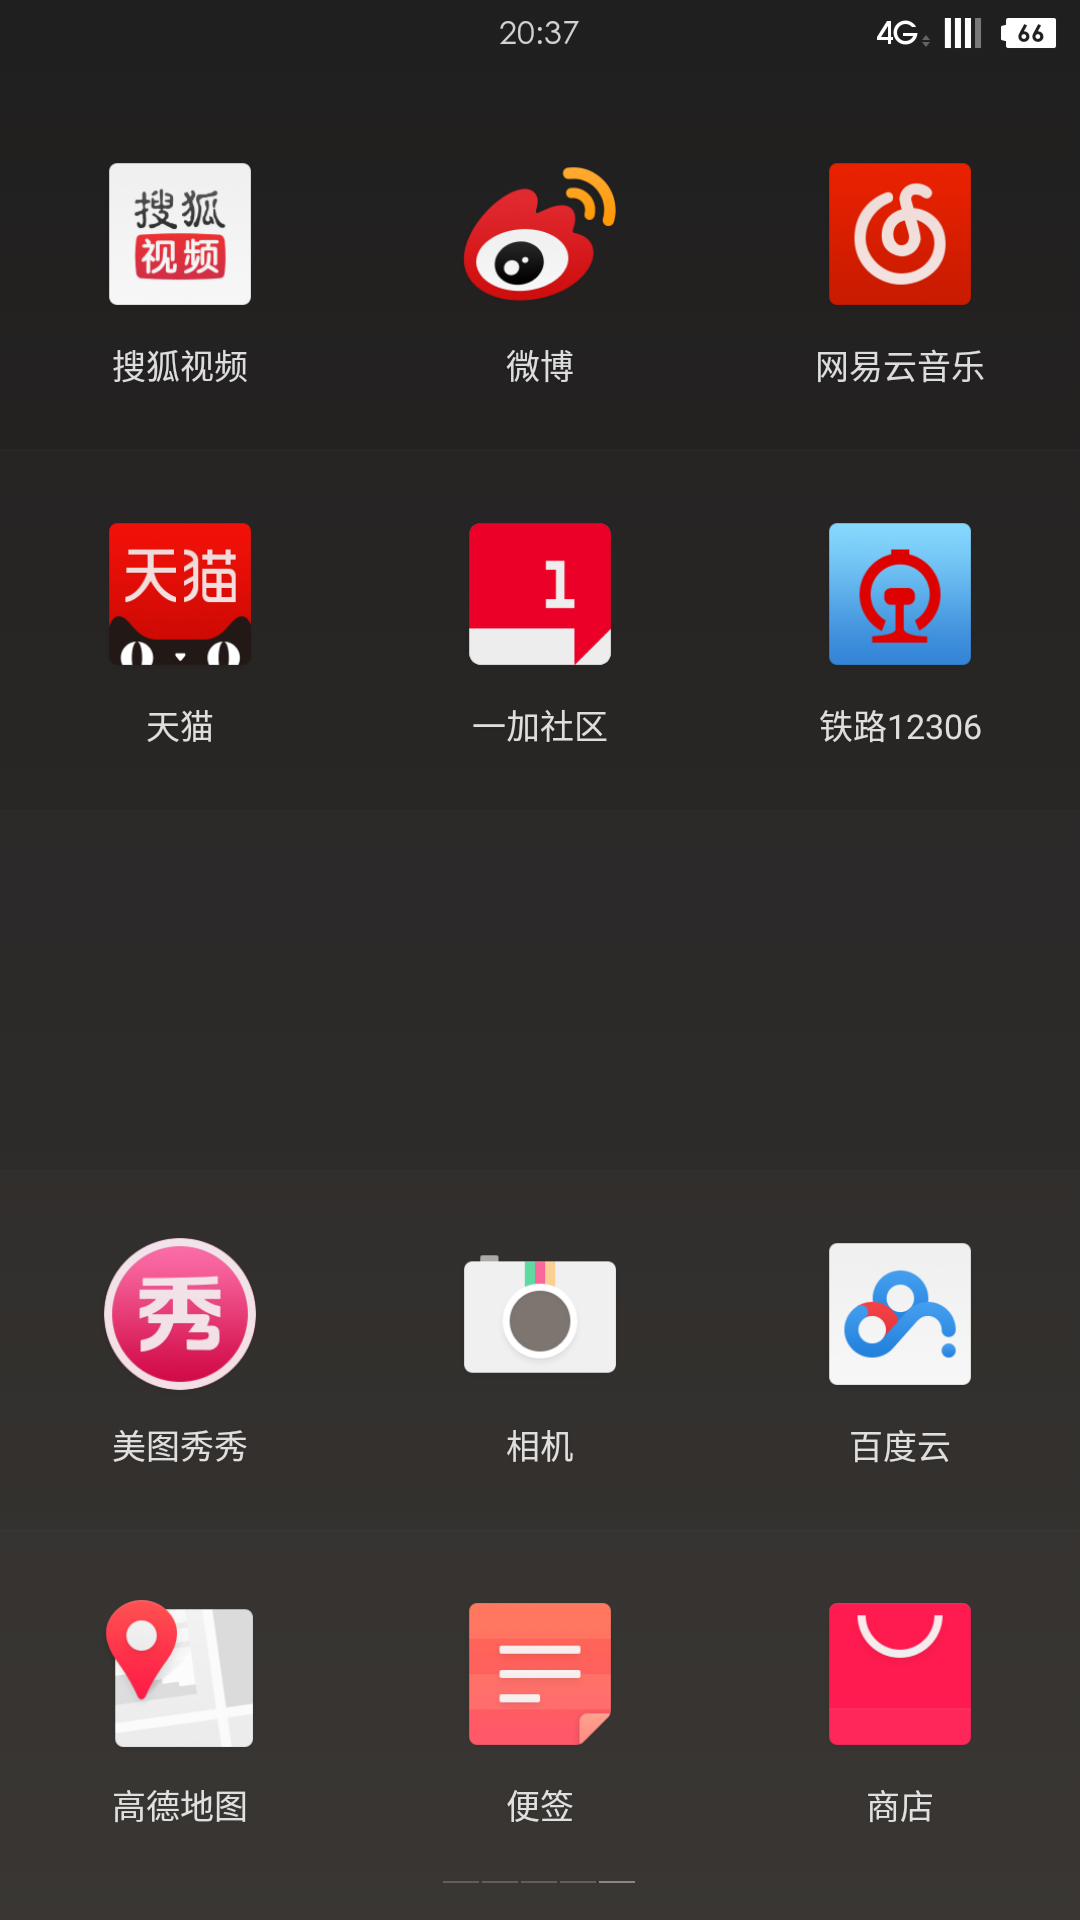 Screenshot_2015-12-14-20-37-03.png